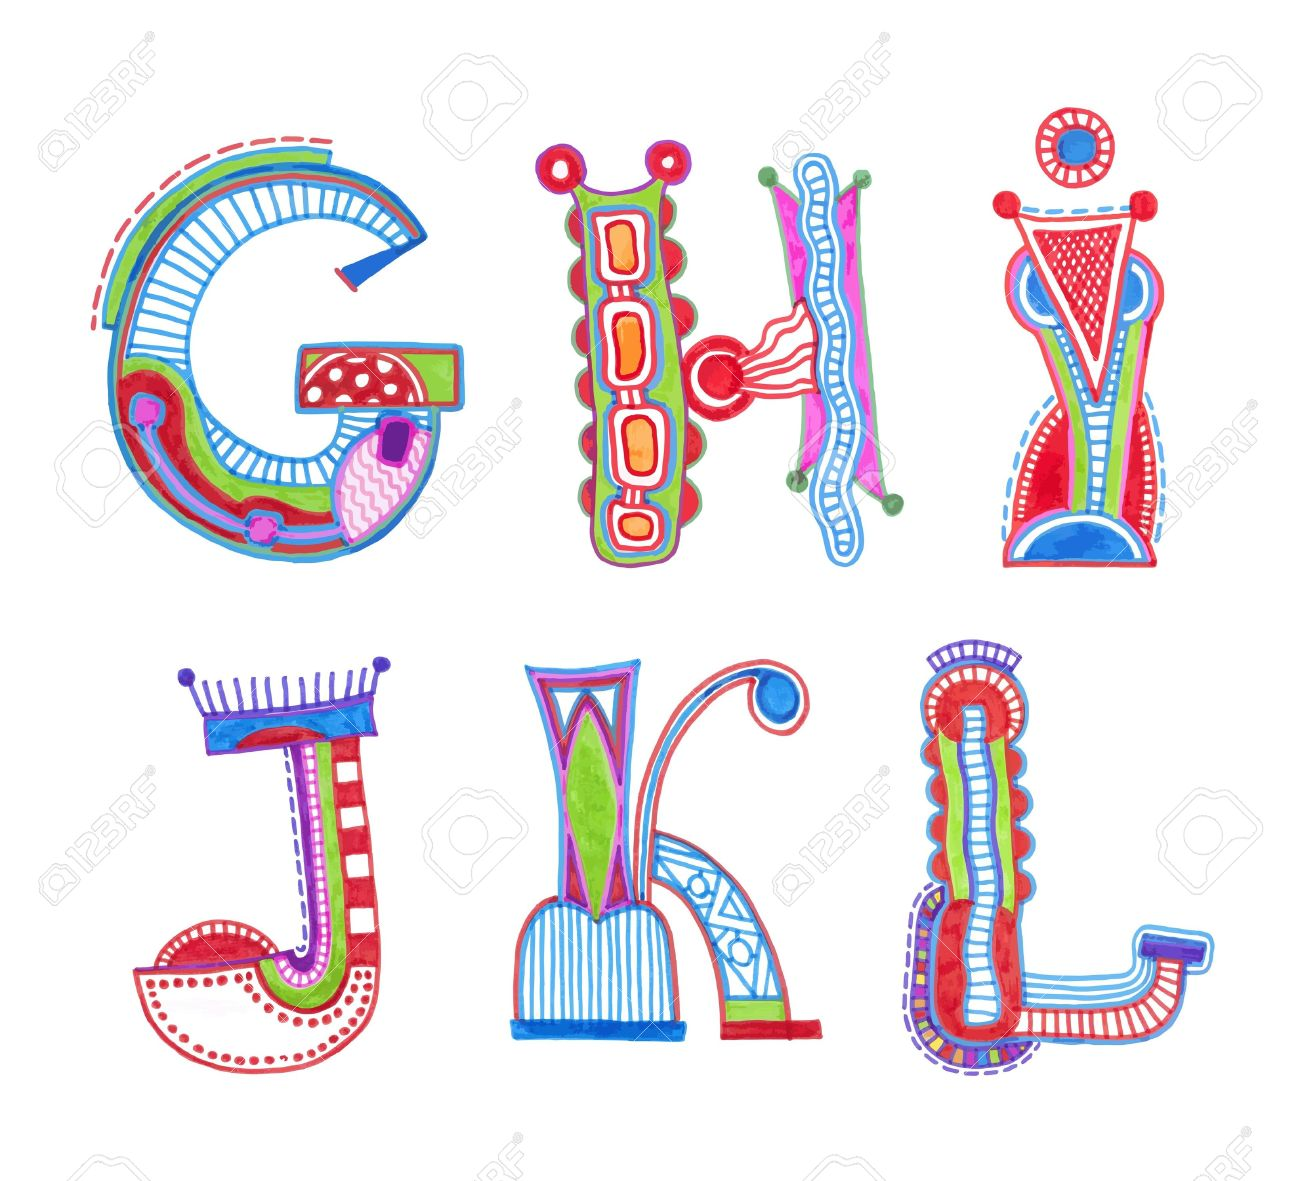 Writing abc clipart picture transparent library 9,919 Abc Writing Stock Vector Illustration And Royalty Free Abc ... picture transparent library